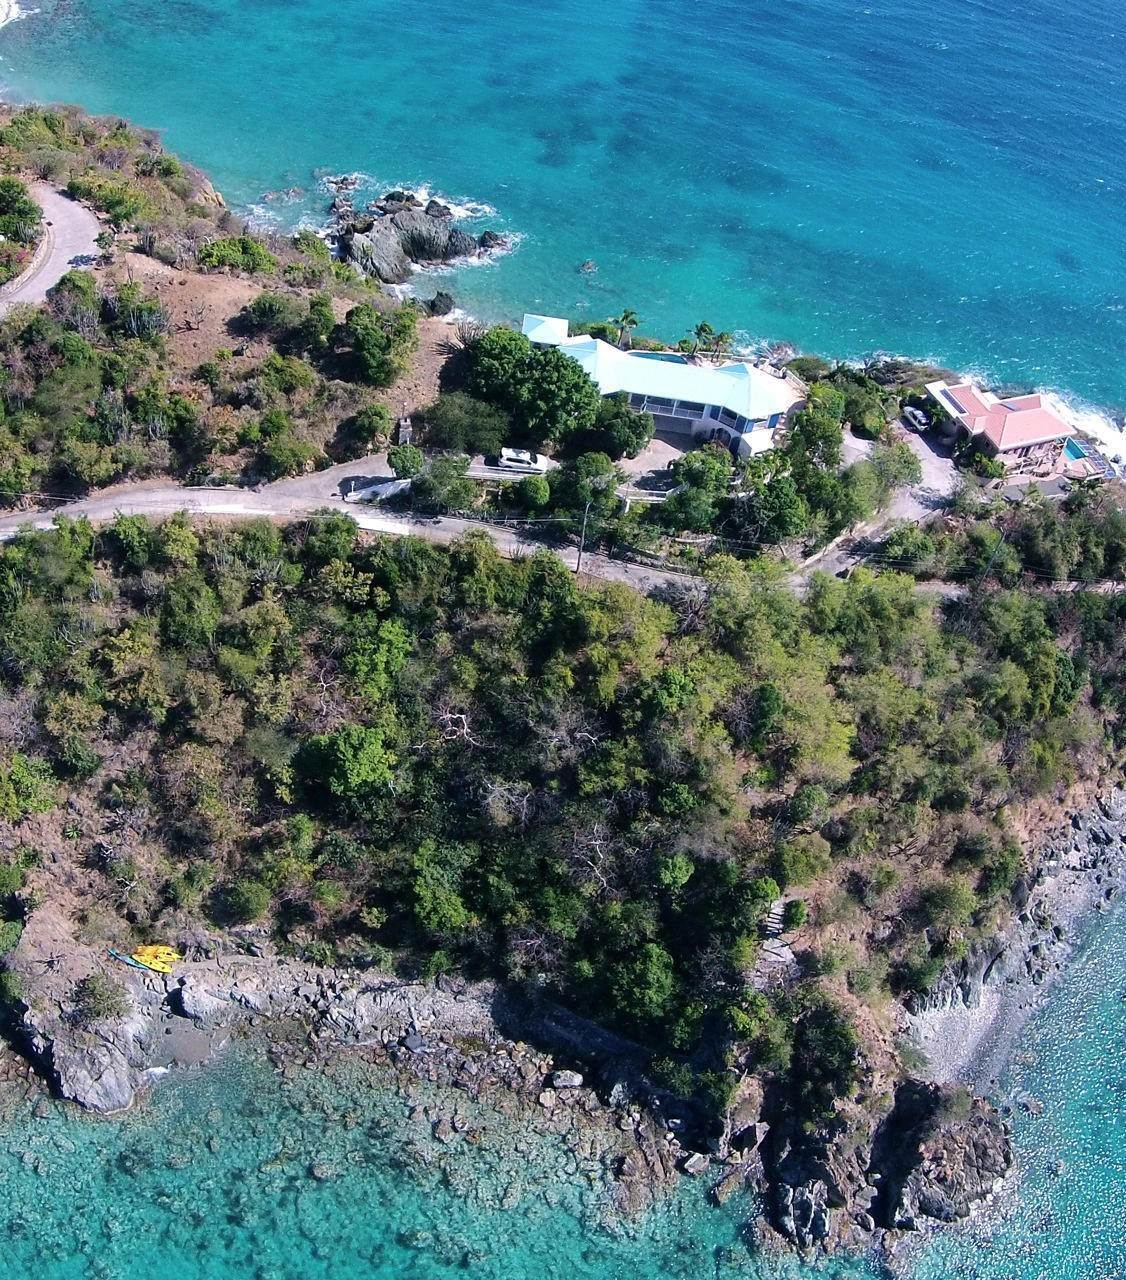 Terreno por un Venta en Hansen Bay St John, Virgin Islands 00830 Islas Virgenes Ee.Uu.